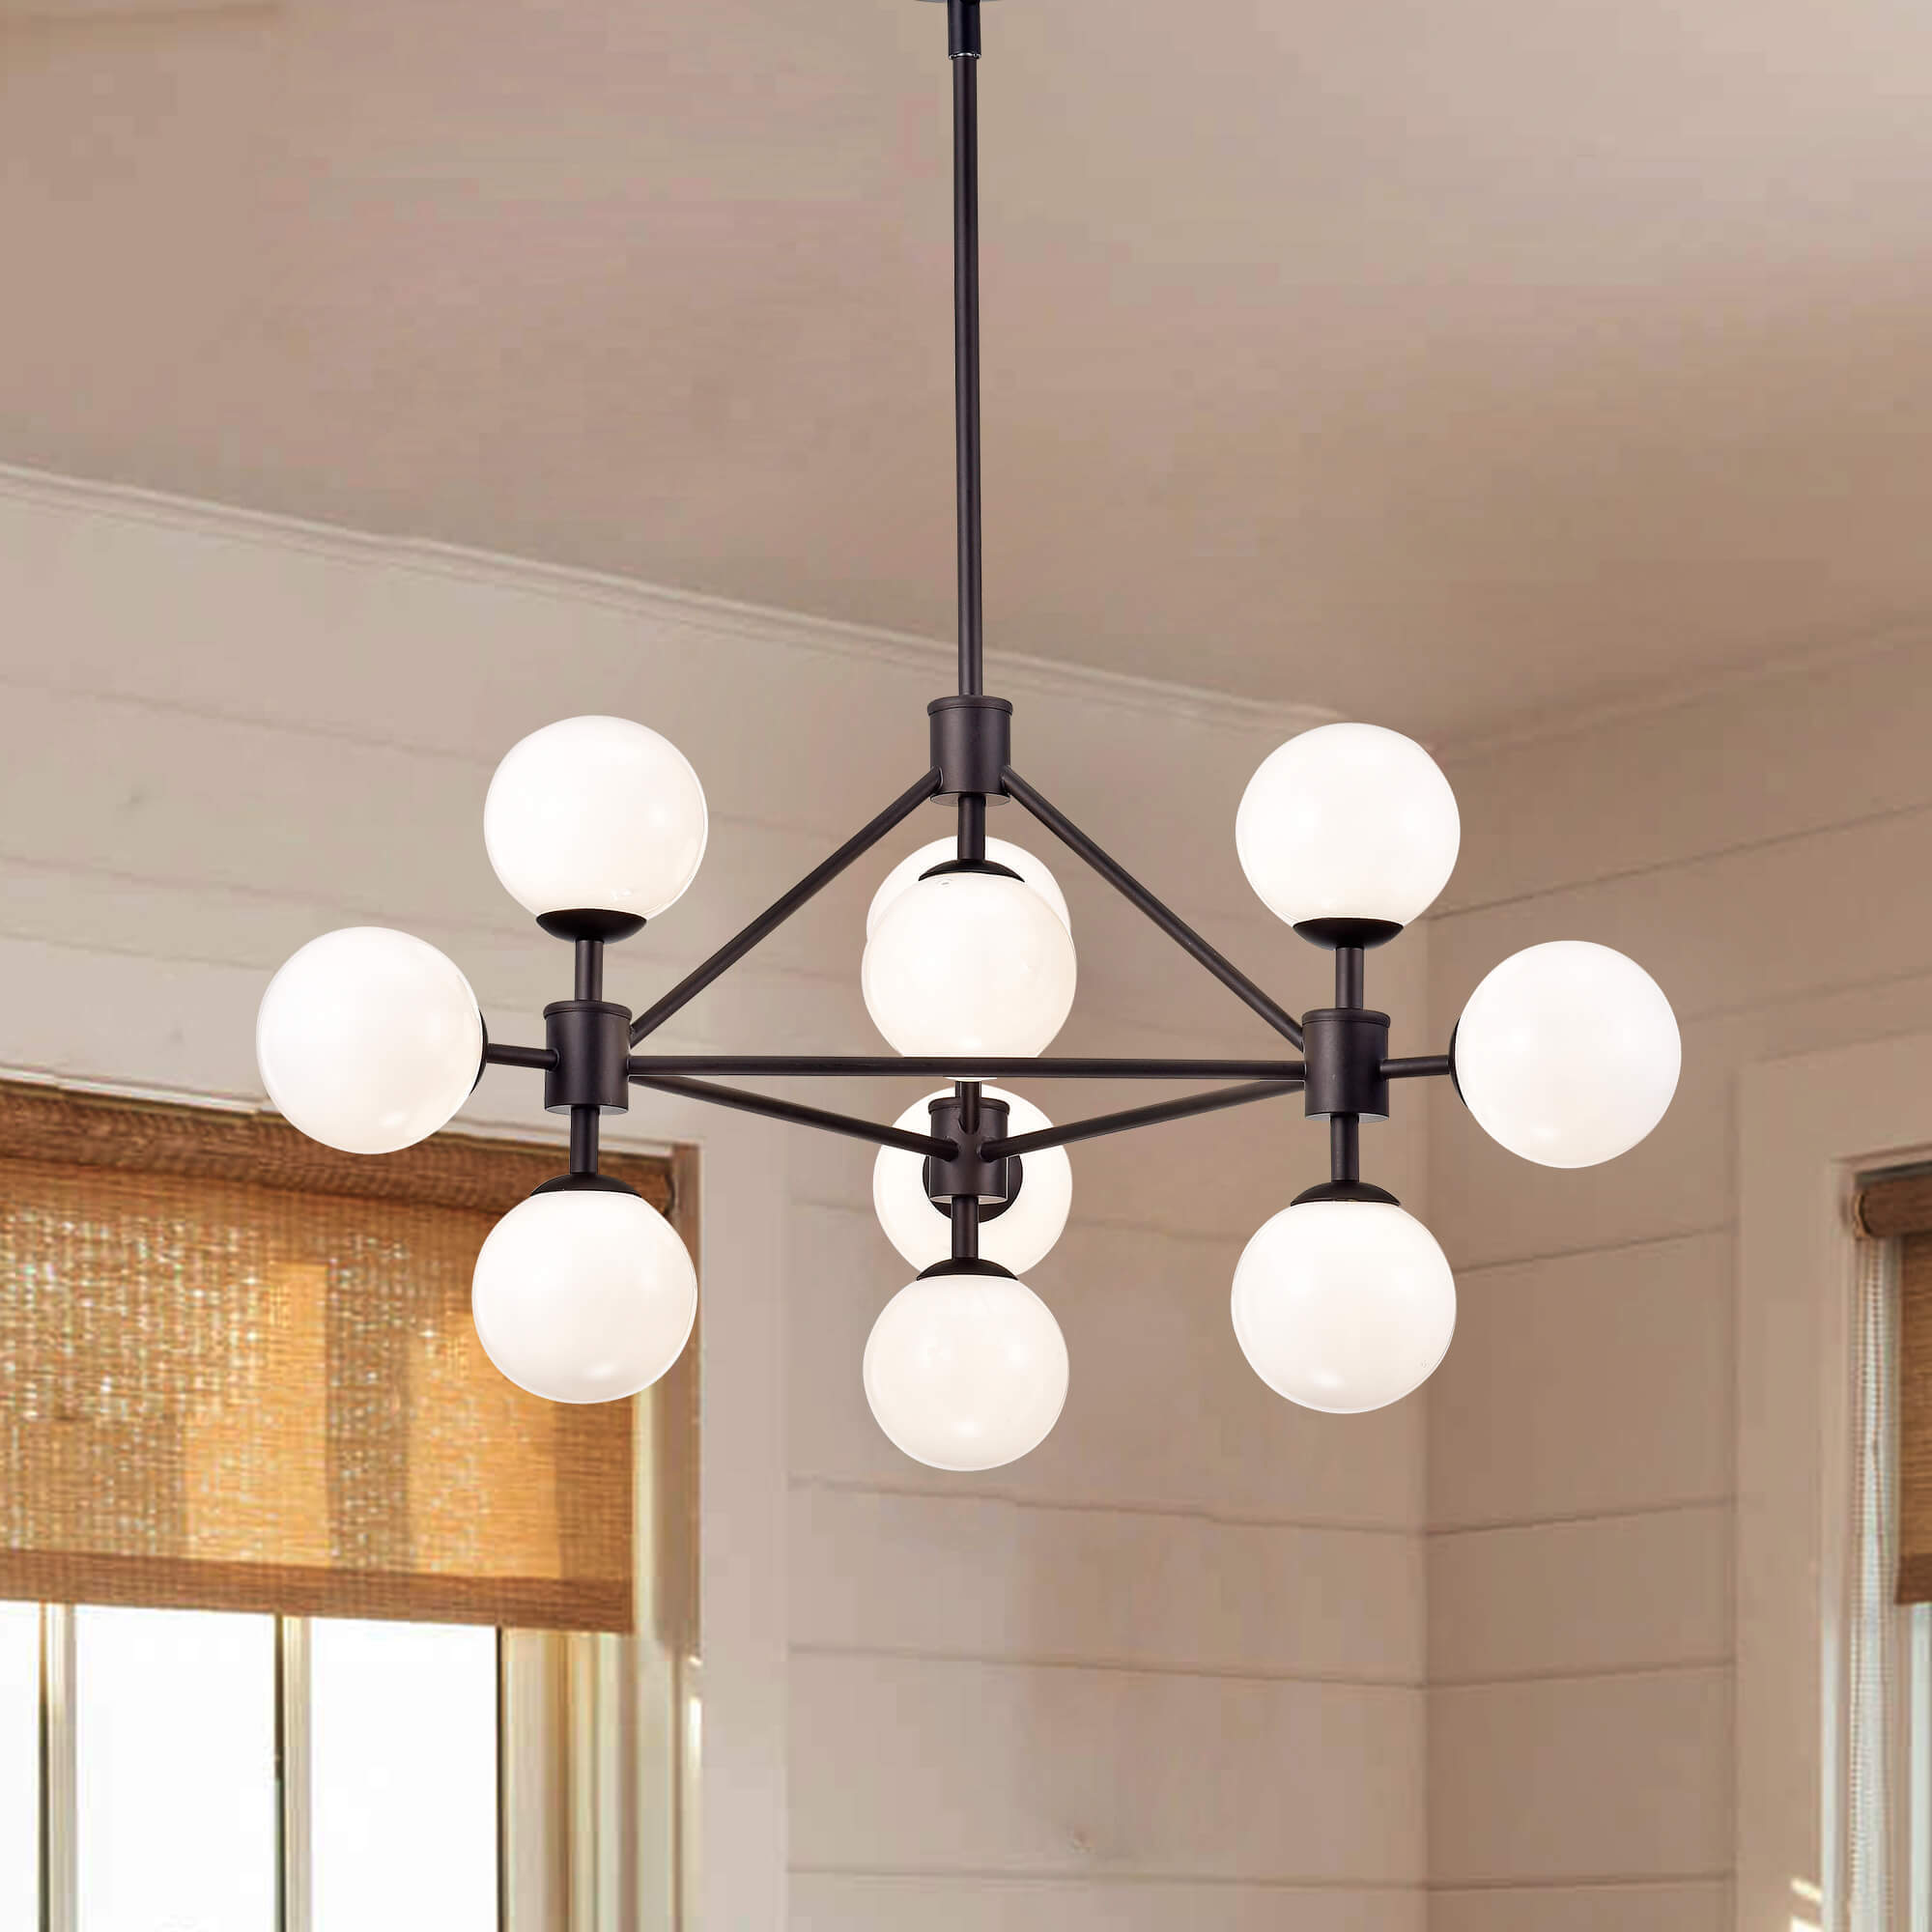 Ceiling lighting clearance liquidation shop our best lighting ceiling fans deals online at overstock